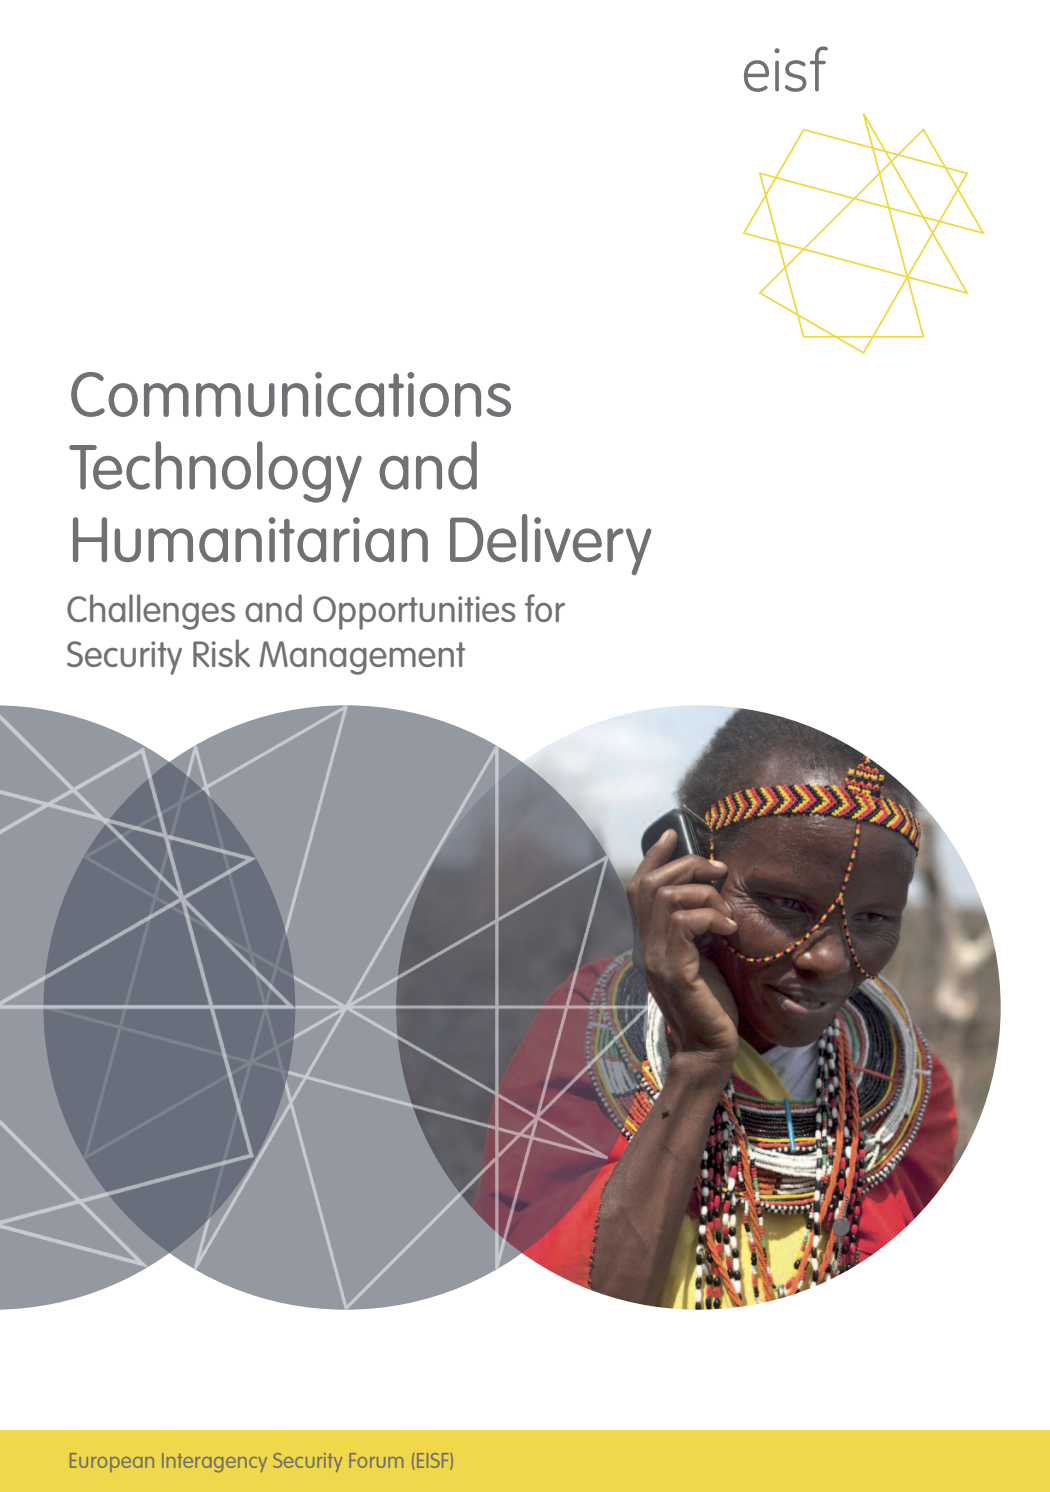 Communications Technology and Humanitarian Delivery: Challenges and opportunities for security risk management